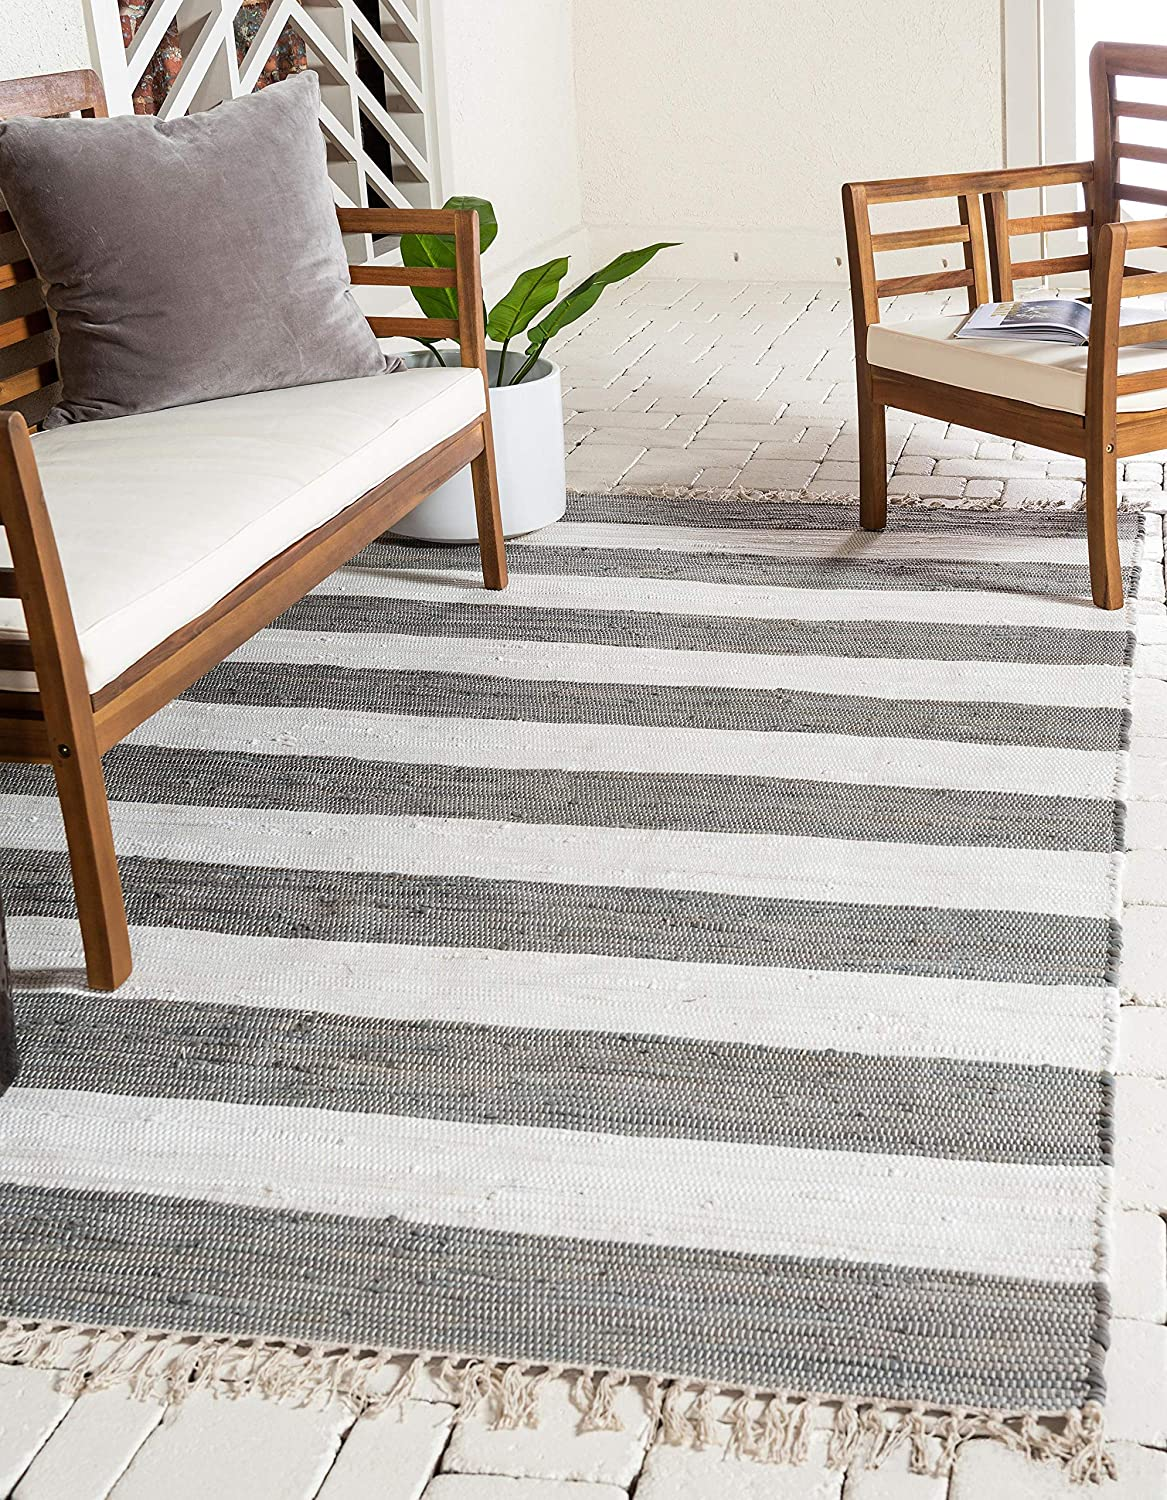 Chindi Rag Collection Striped Gray Area Rug by Unique Loom| Designer Finds: Bringing Natural Elements Into Your Home | Jade and Sage Interior Design | eDesign Tribe Blogs